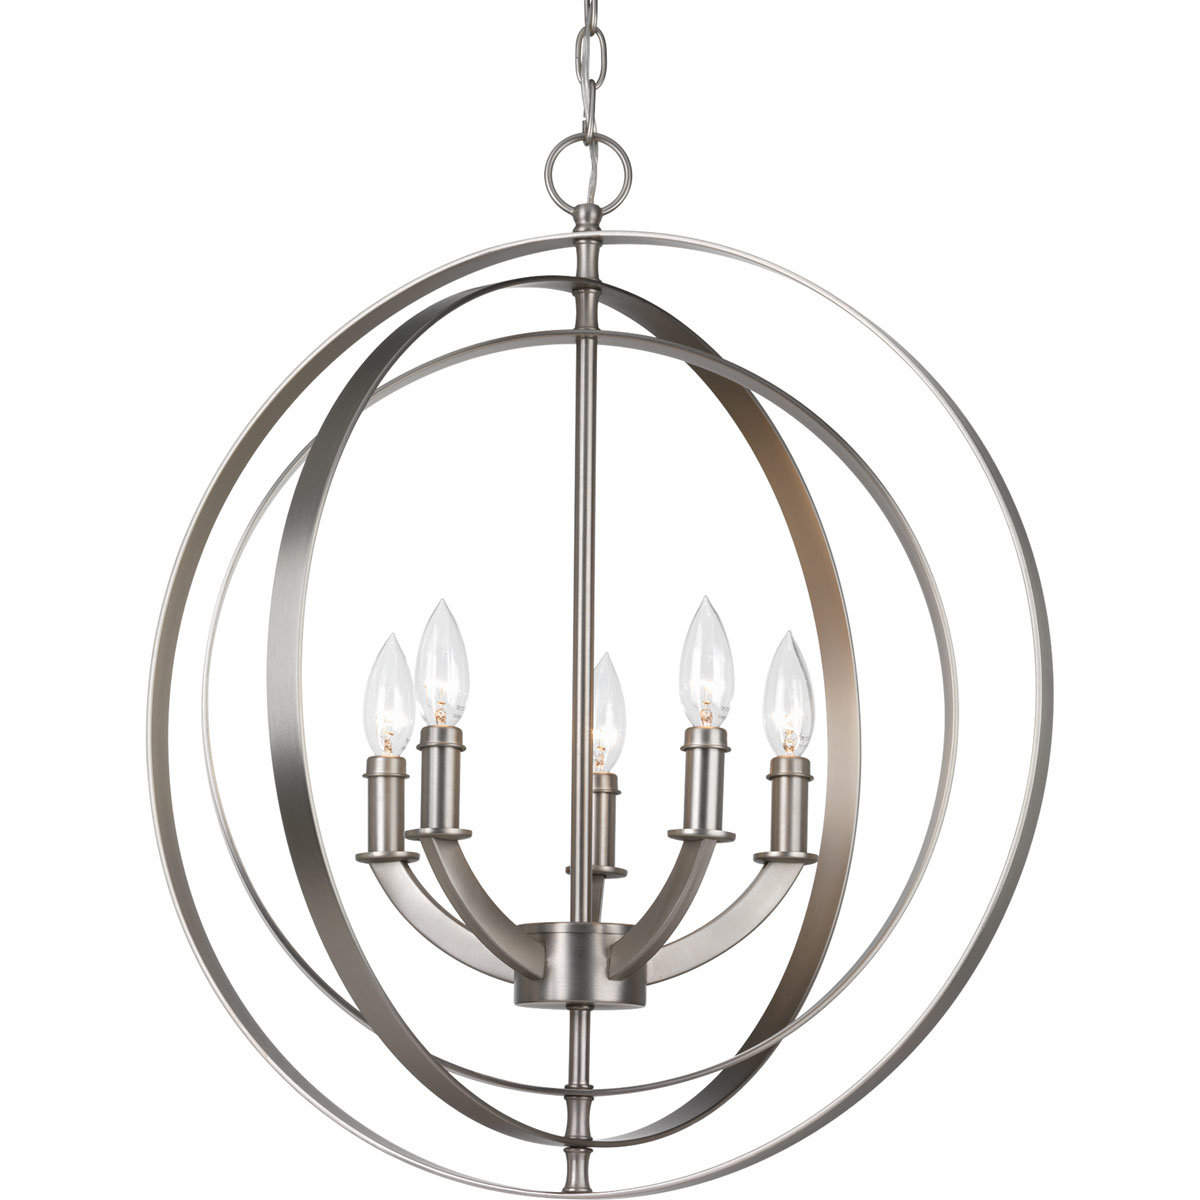 Widely Used Morganti 4 Light Chandeliers Throughout Morganti 5 Light Chandelier (View 15 of 20)